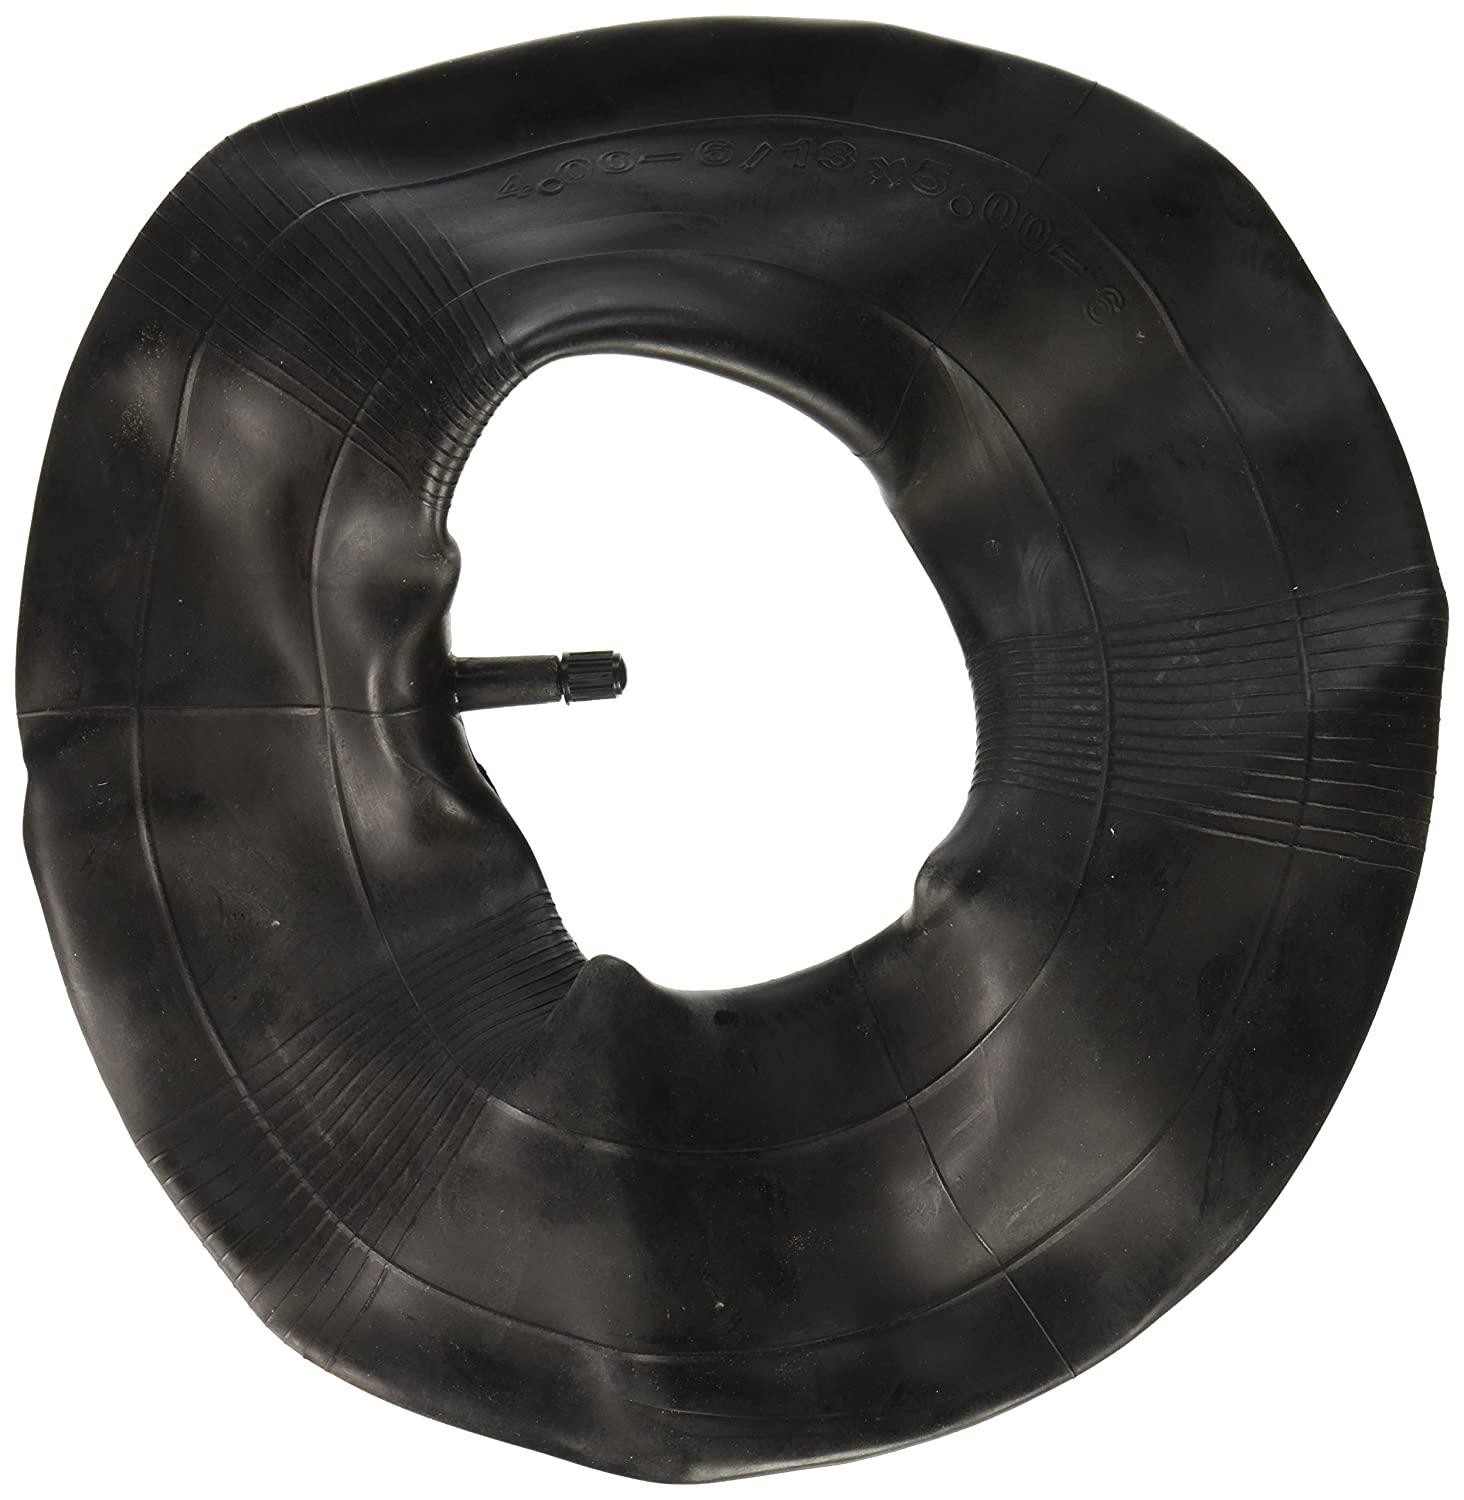 Marathon Flat Free Quick-Seal Replacement Inner Tube - 4.00-6 / 13x5.00-6 - Pre-filled with Flat Free Tire Sealant 45011